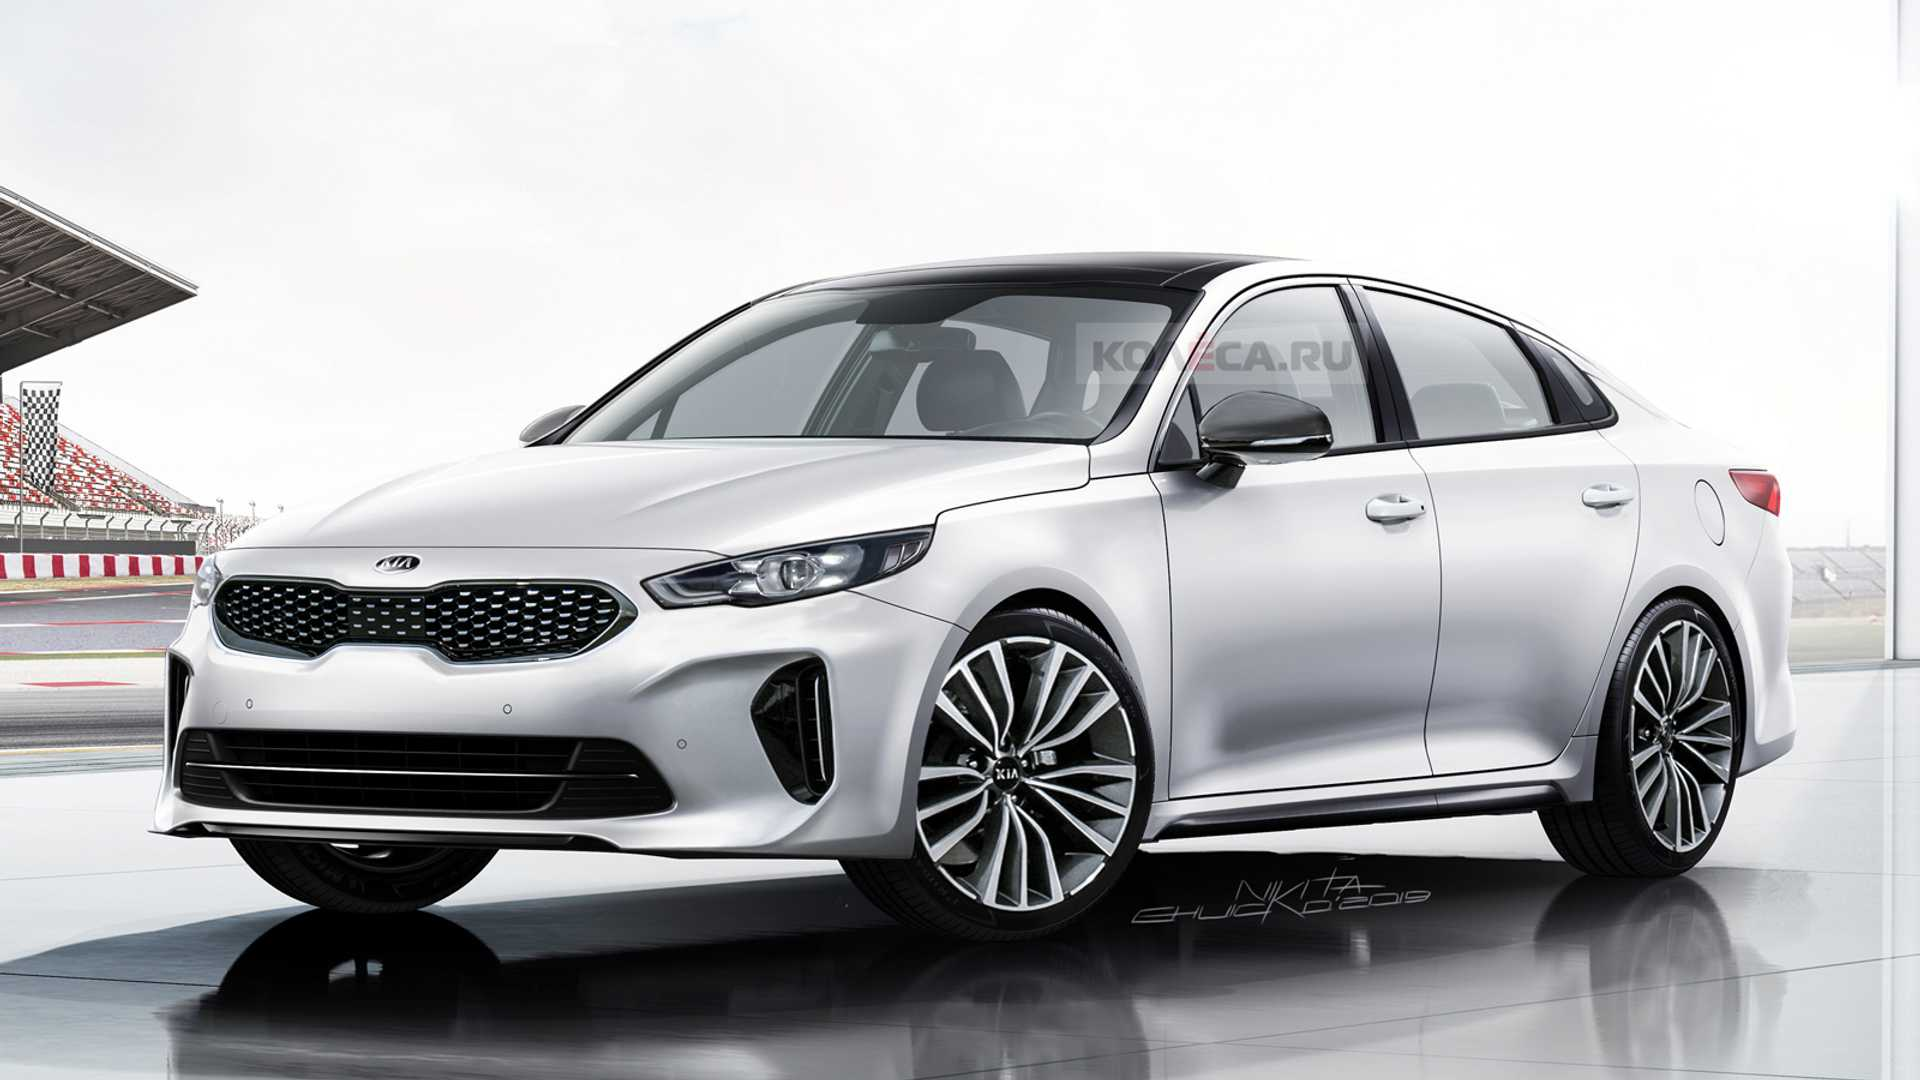 Kia Optima Gets Stylish Look In Next-Gen Rendering